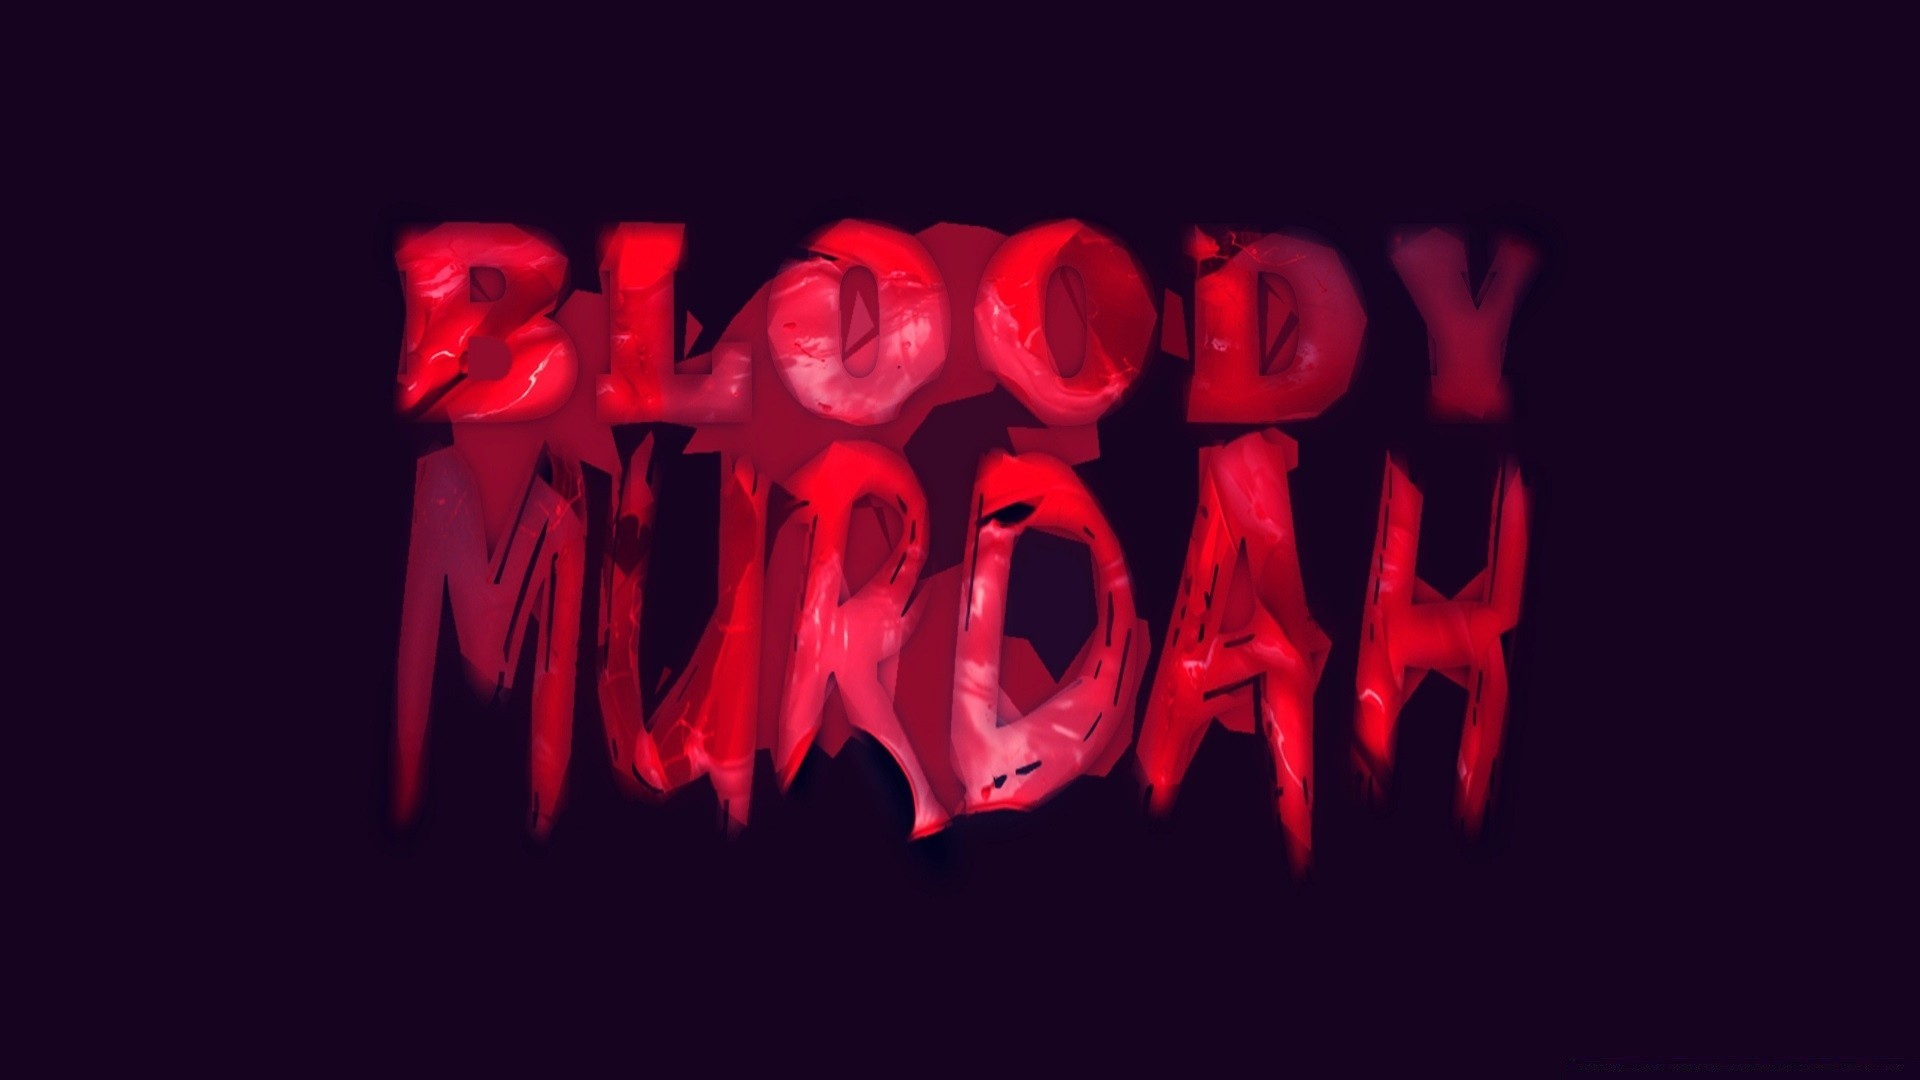 Bloody Murdah Android Wallpapers For Free